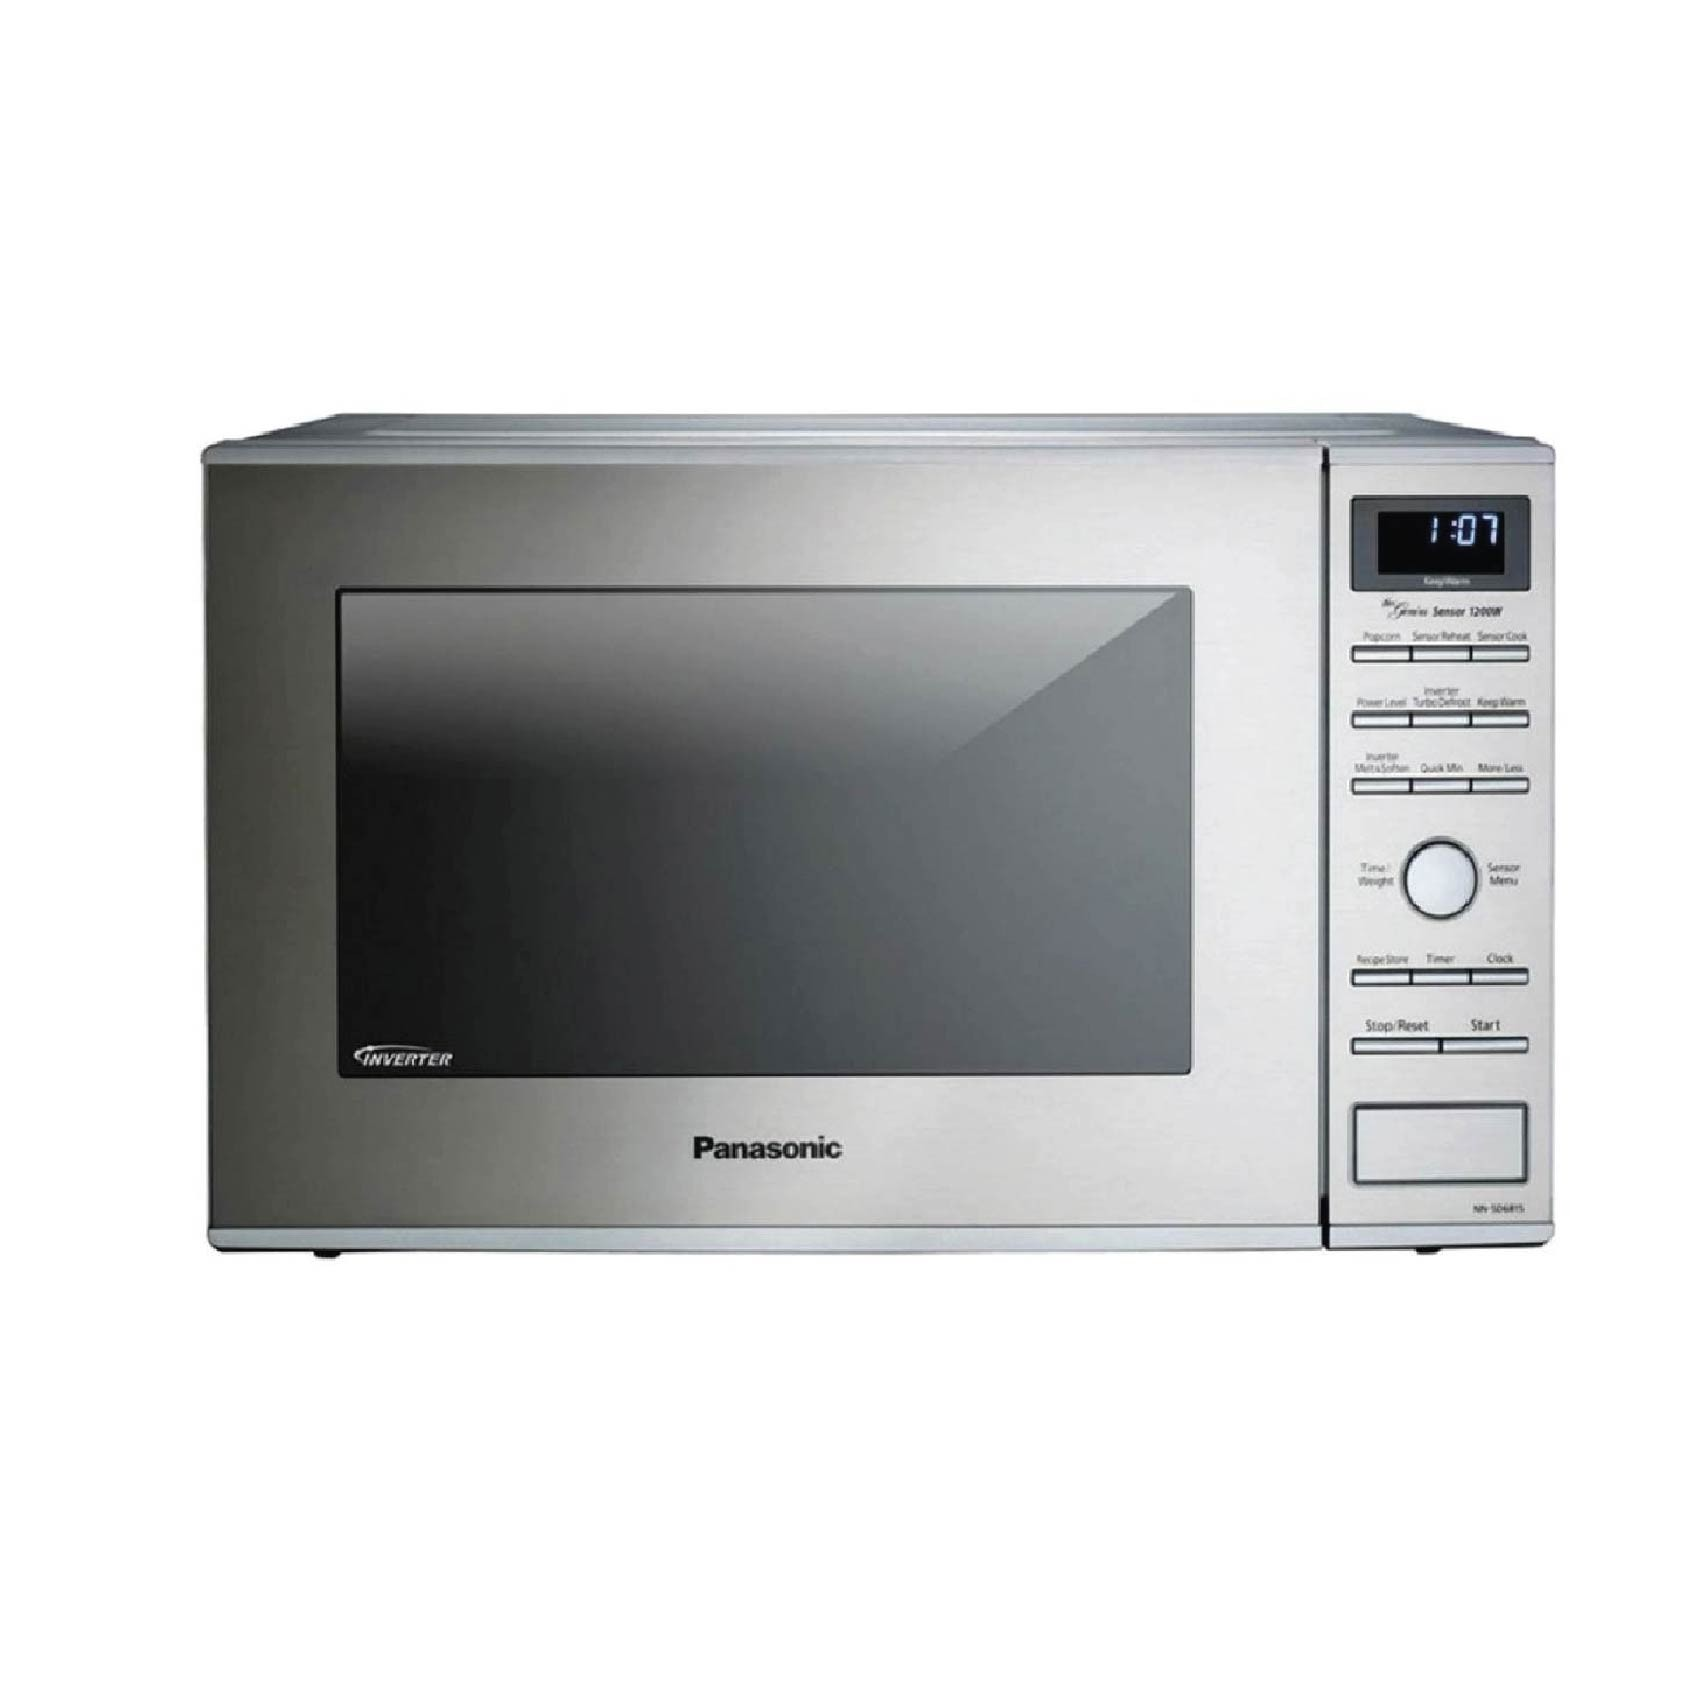 Abed Tahan - Microwave - Microwaves & Electric Ovens - Small